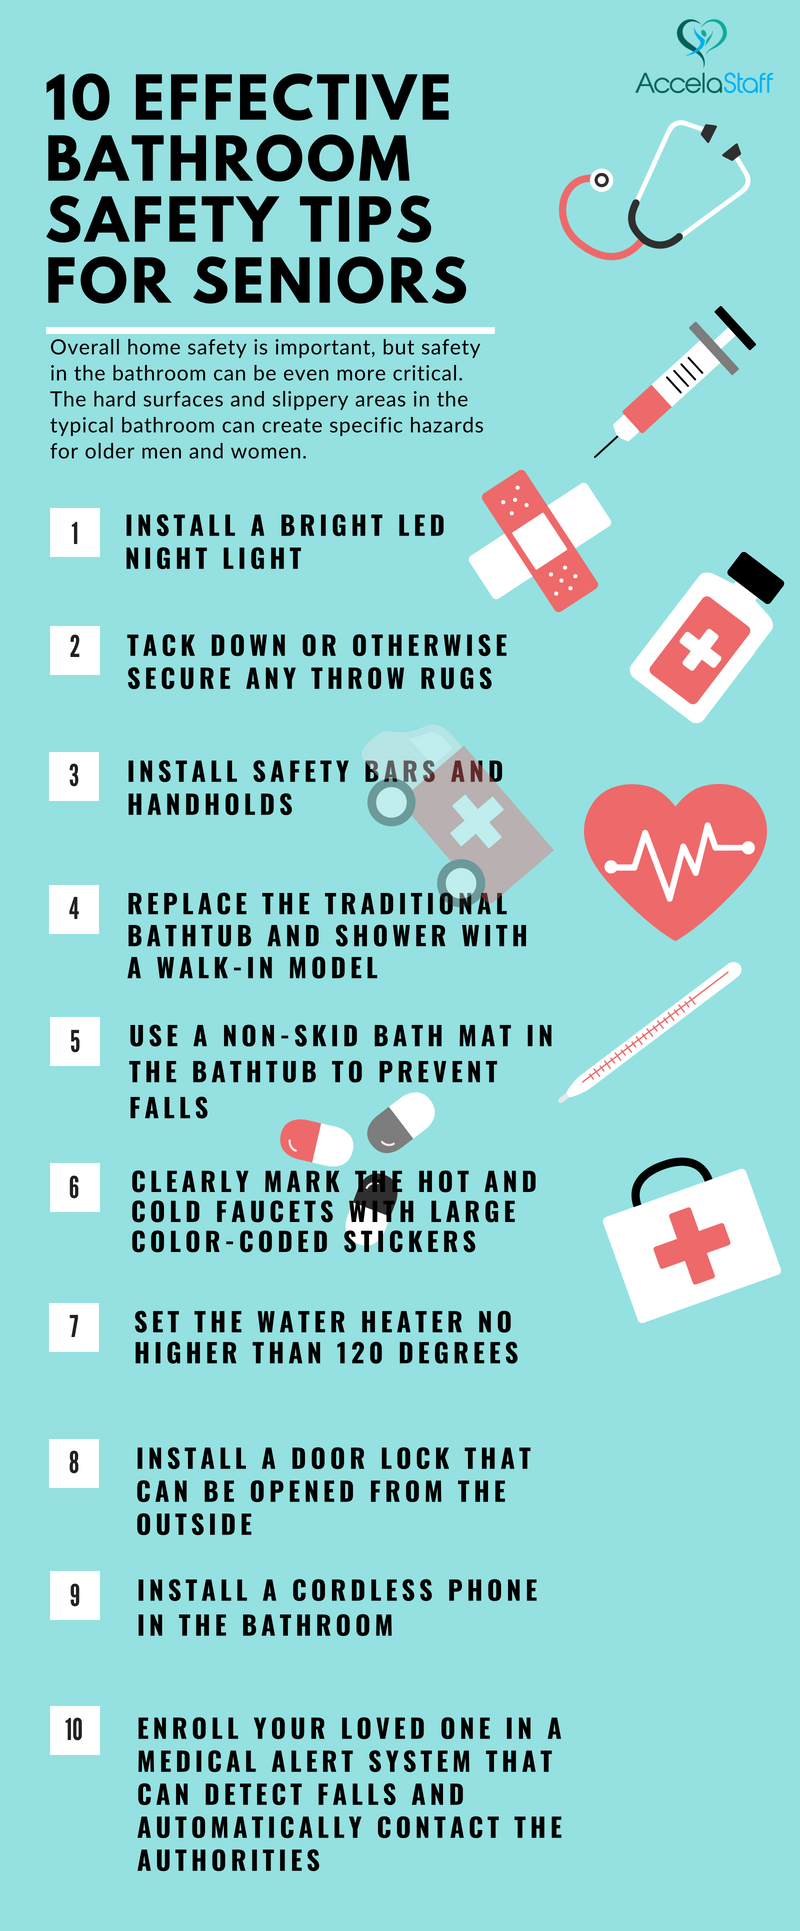 10 Effective Bathroom Safety Tips for Seniors